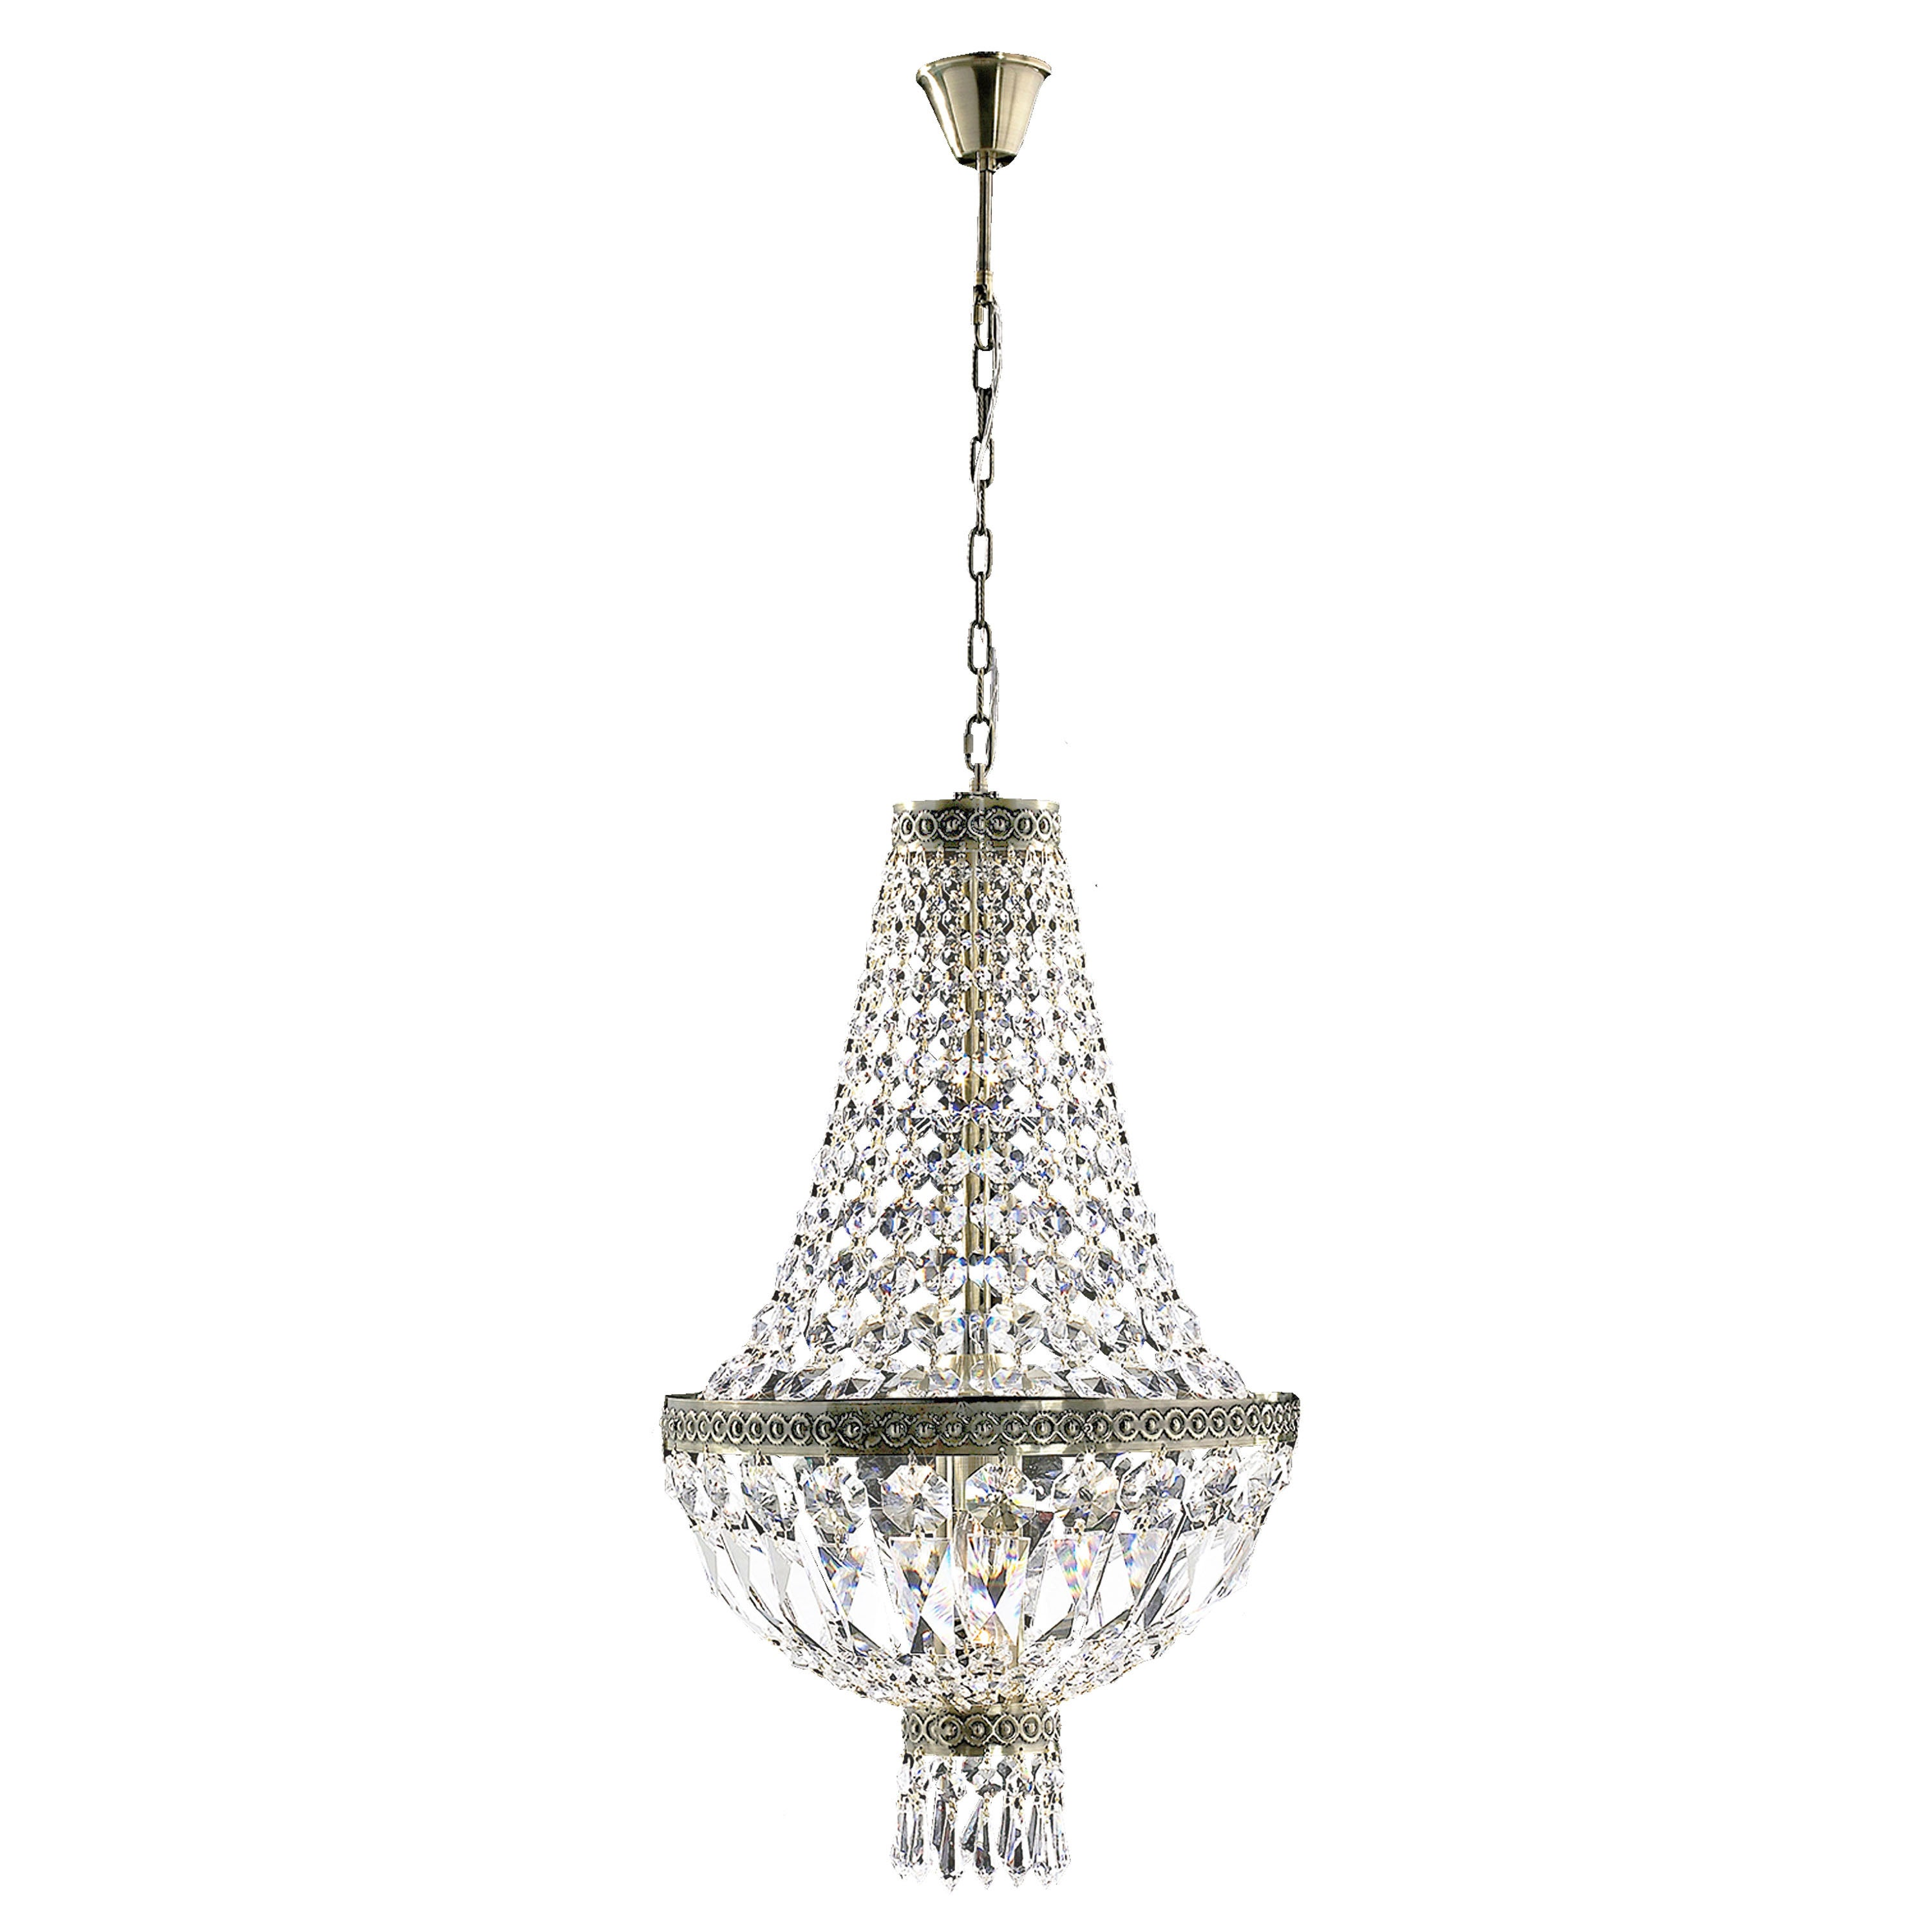 fixtures lamps chandelier for mini hallway inch chandeliers lighting chrome foyer shop ceiling kichler crystal by persuasion light room com lights